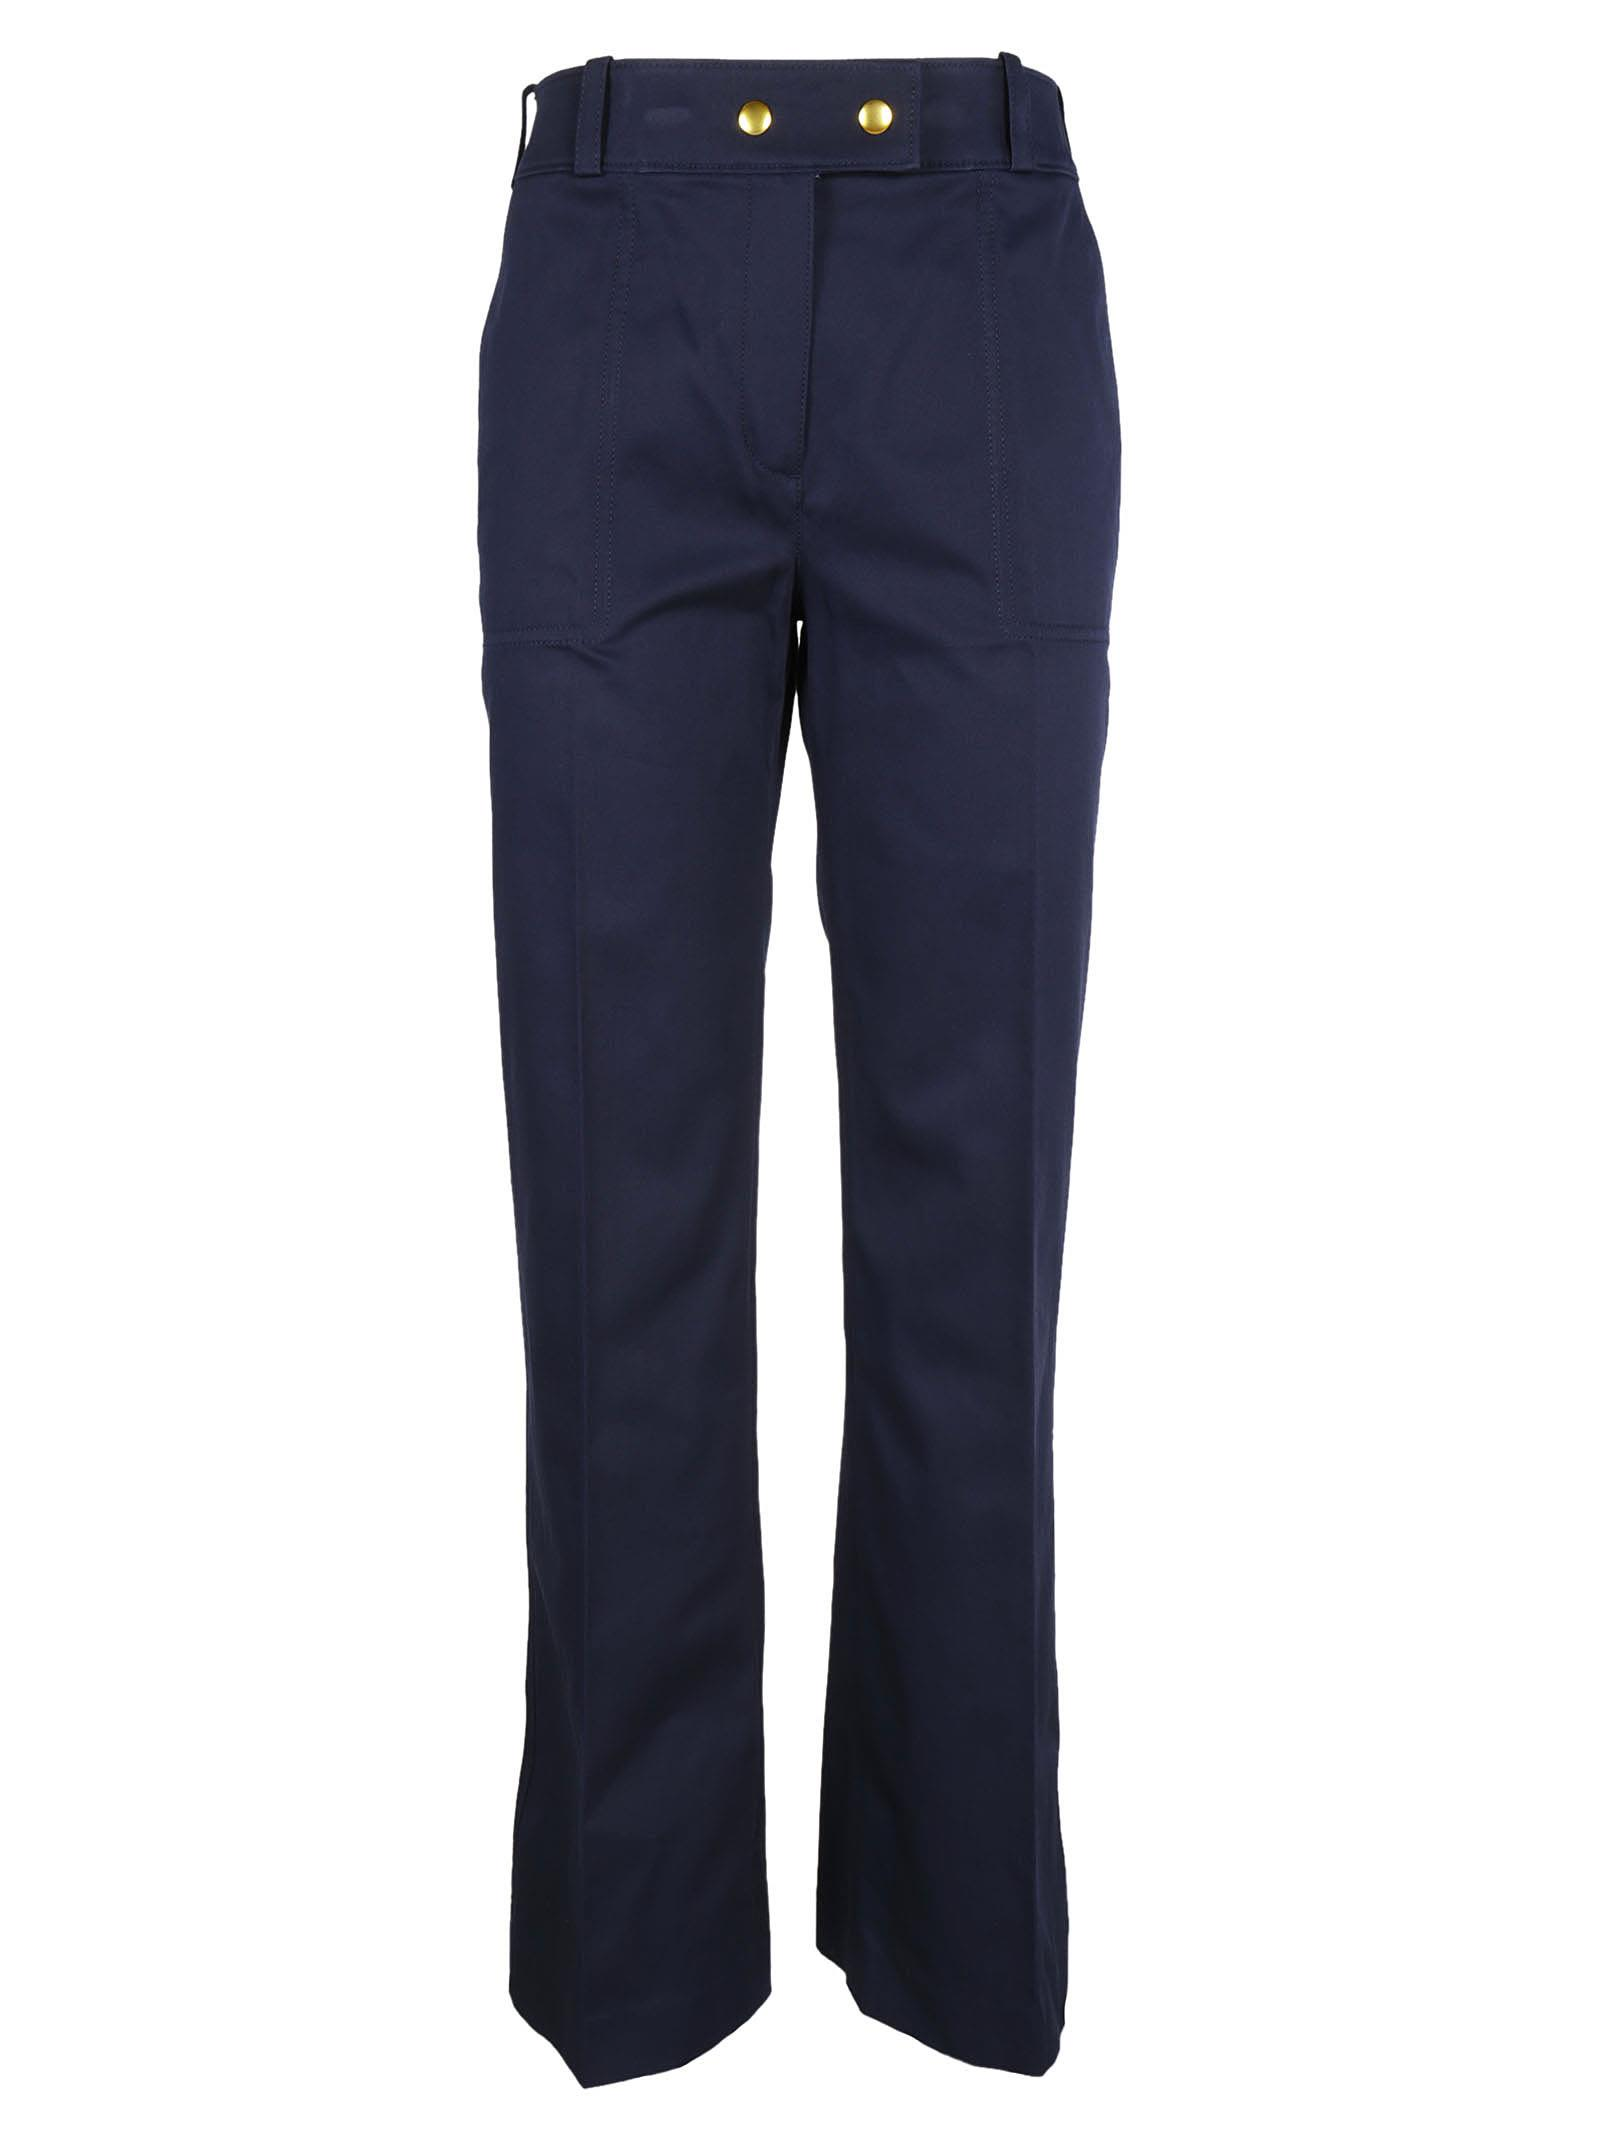 Tory Burch Maddie Trousers